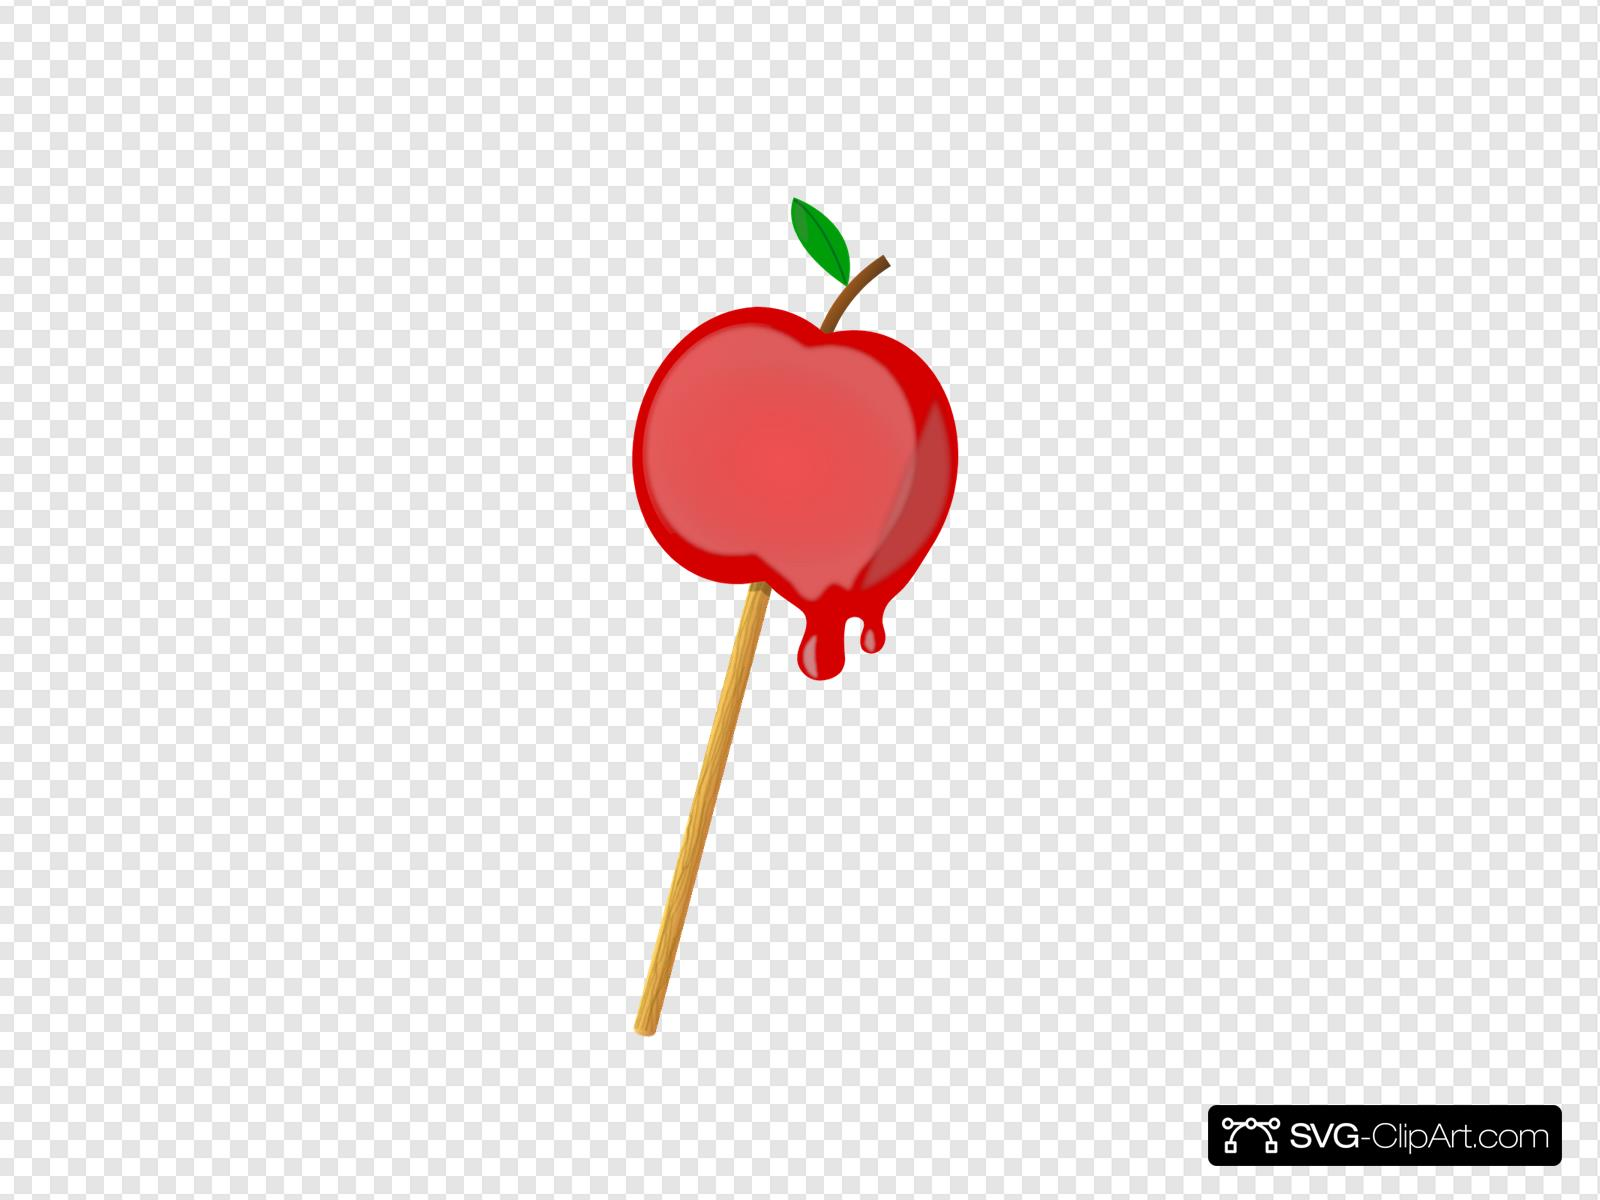 Candy Apple Svg Vector Candy Apple Clip Art Svg Clipart